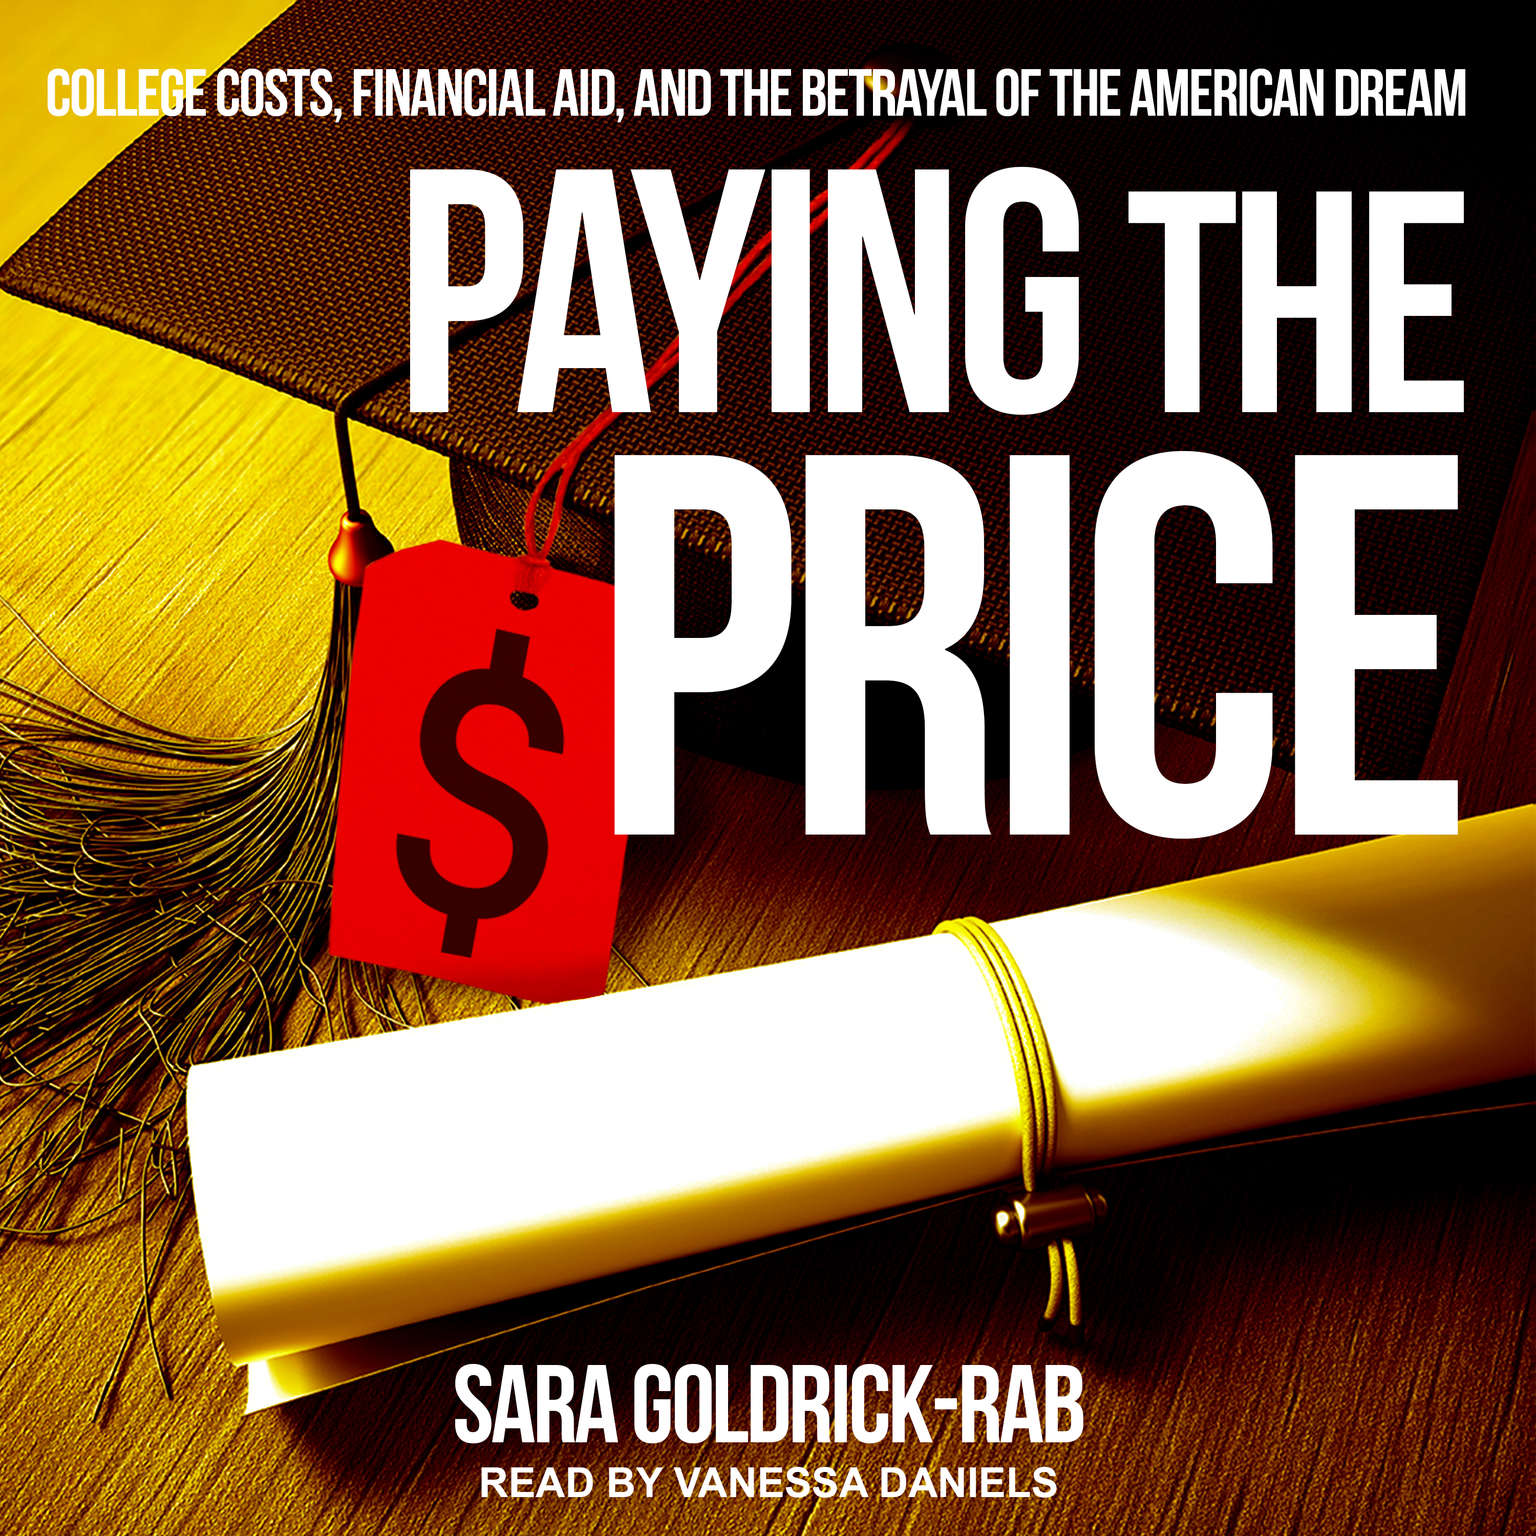 Paying the Price: College Costs, Financial Aid, and the Betrayal of the American Dream Audiobook, by Sara Goldrick-Rab